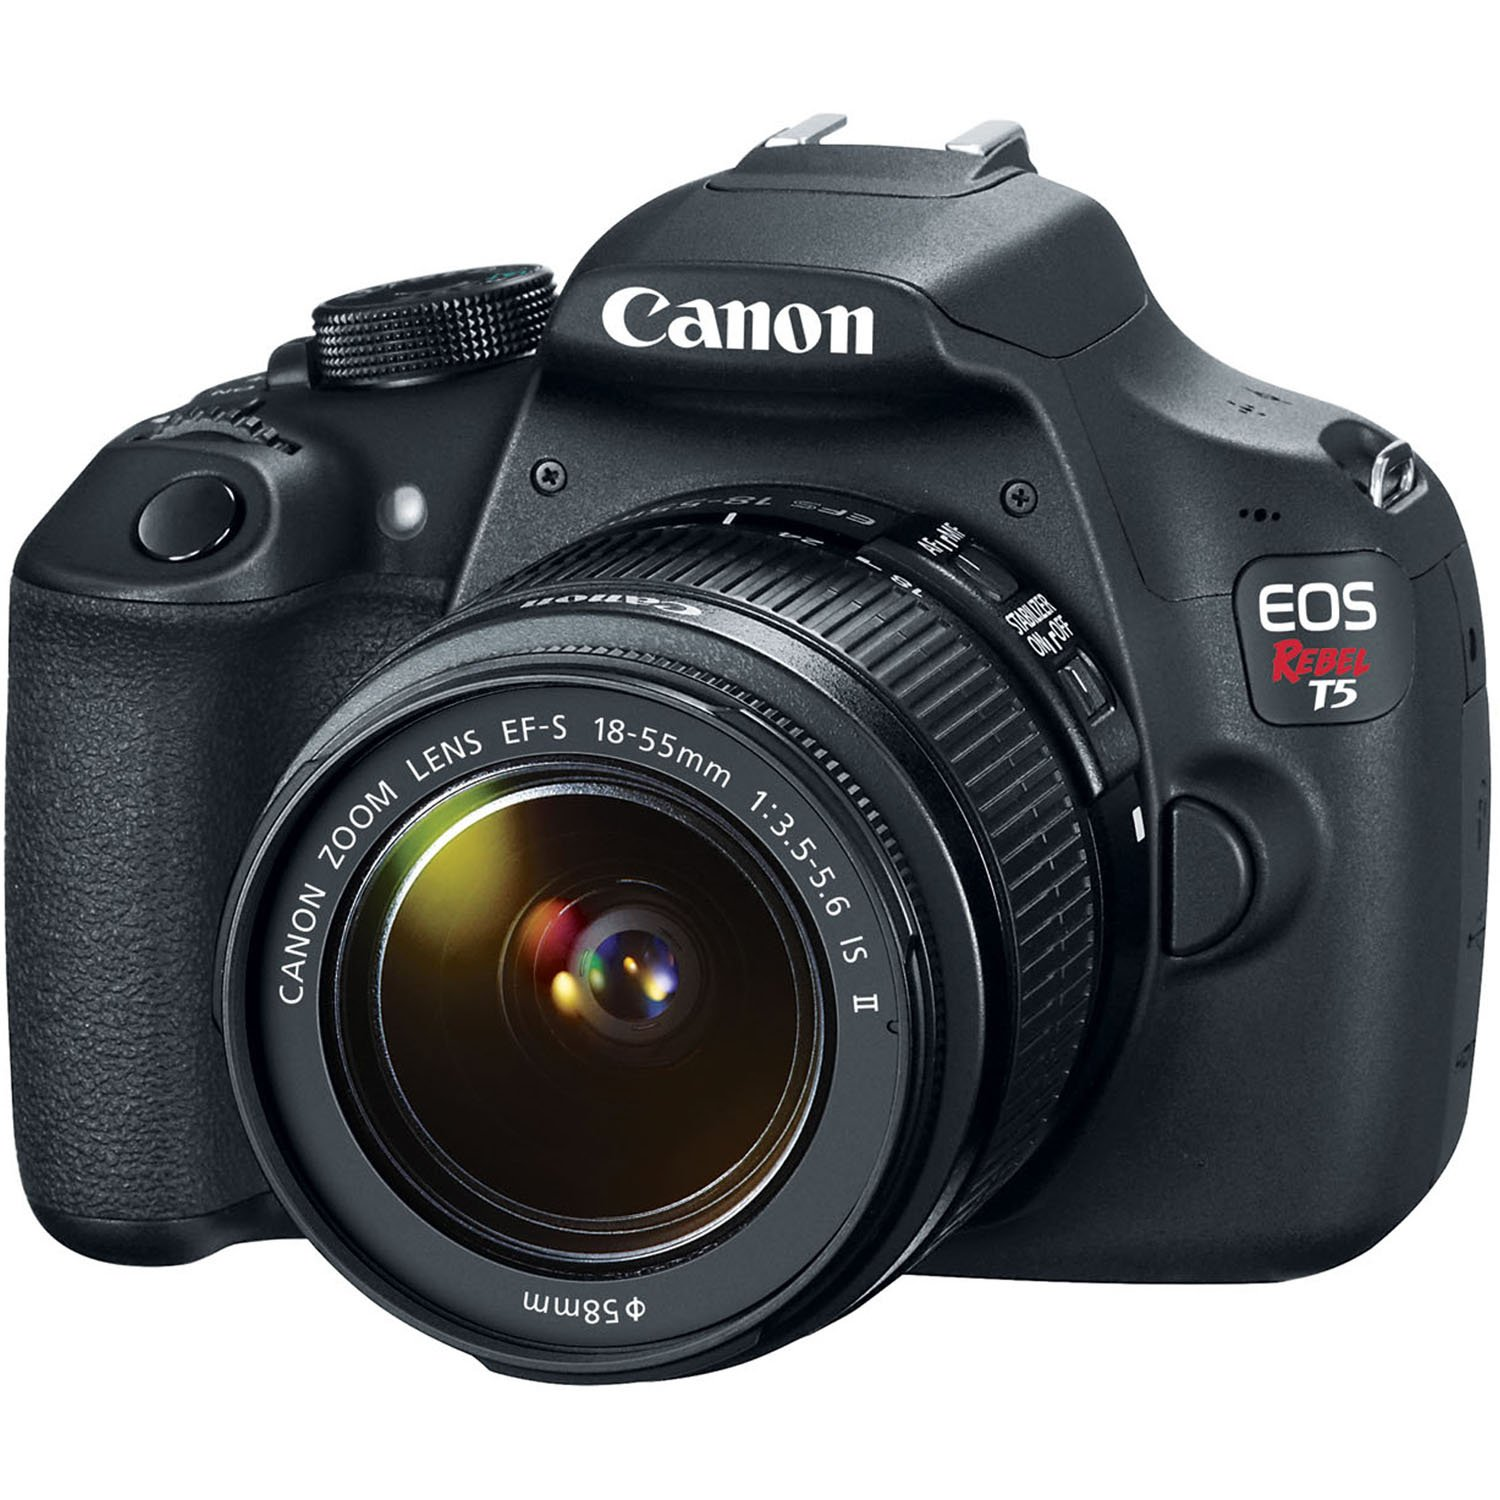 Canon EOS Rebel T5-Best Camera Under 400